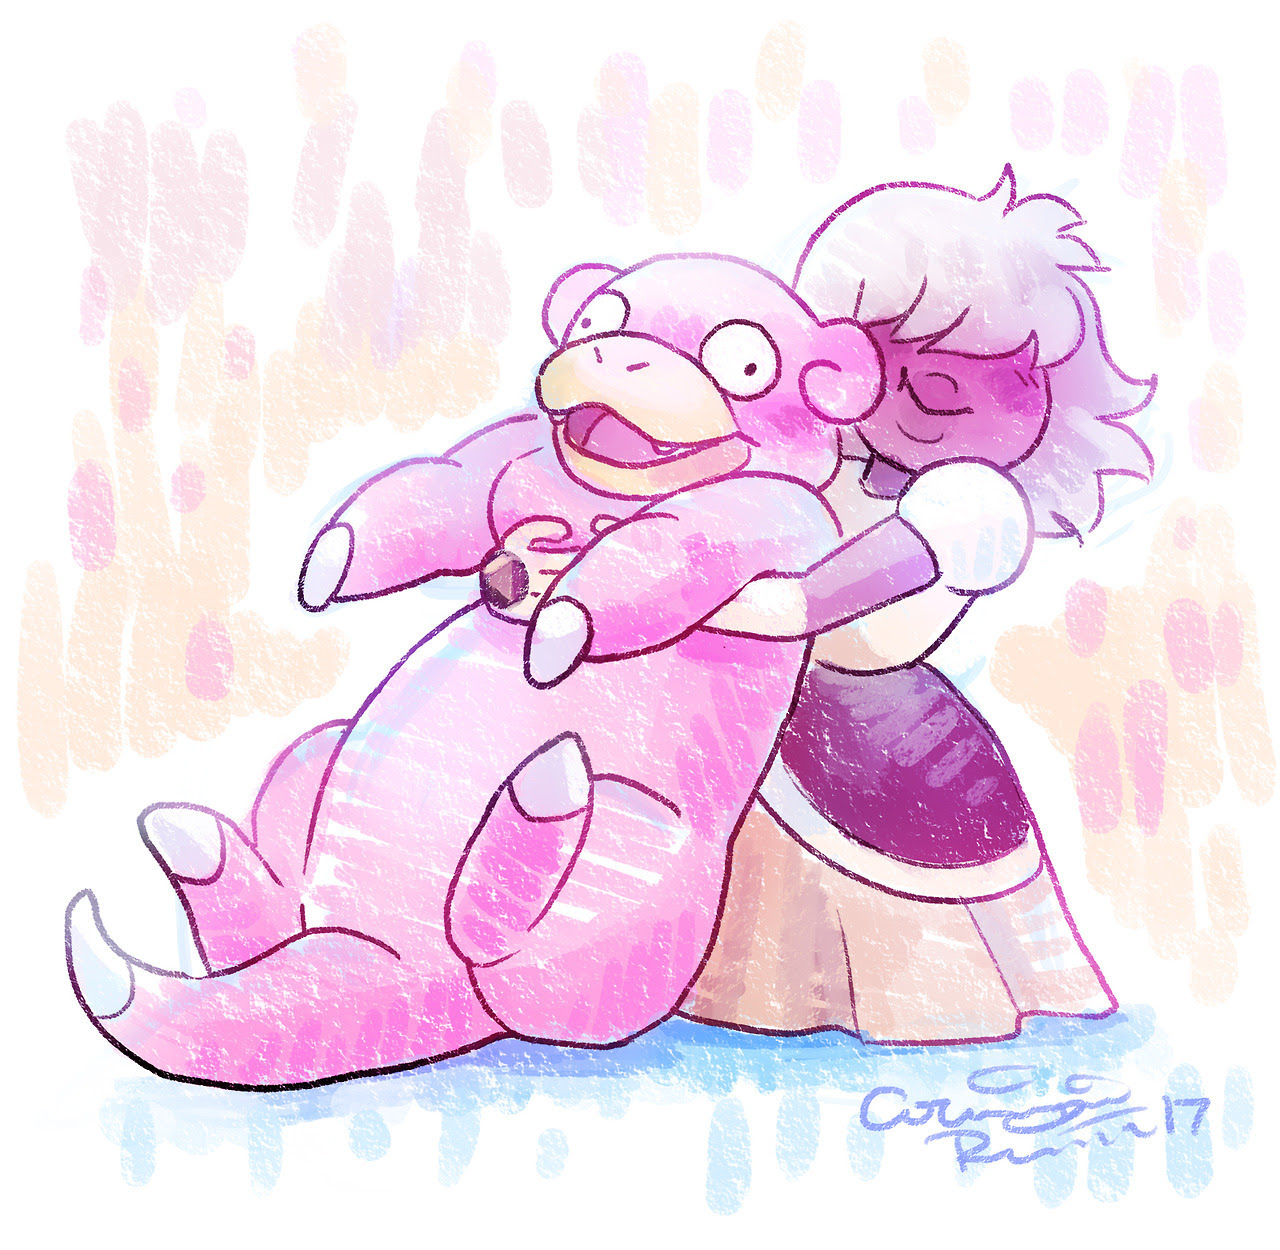 My roommate said Padpara was like a slowpoke and I died a little